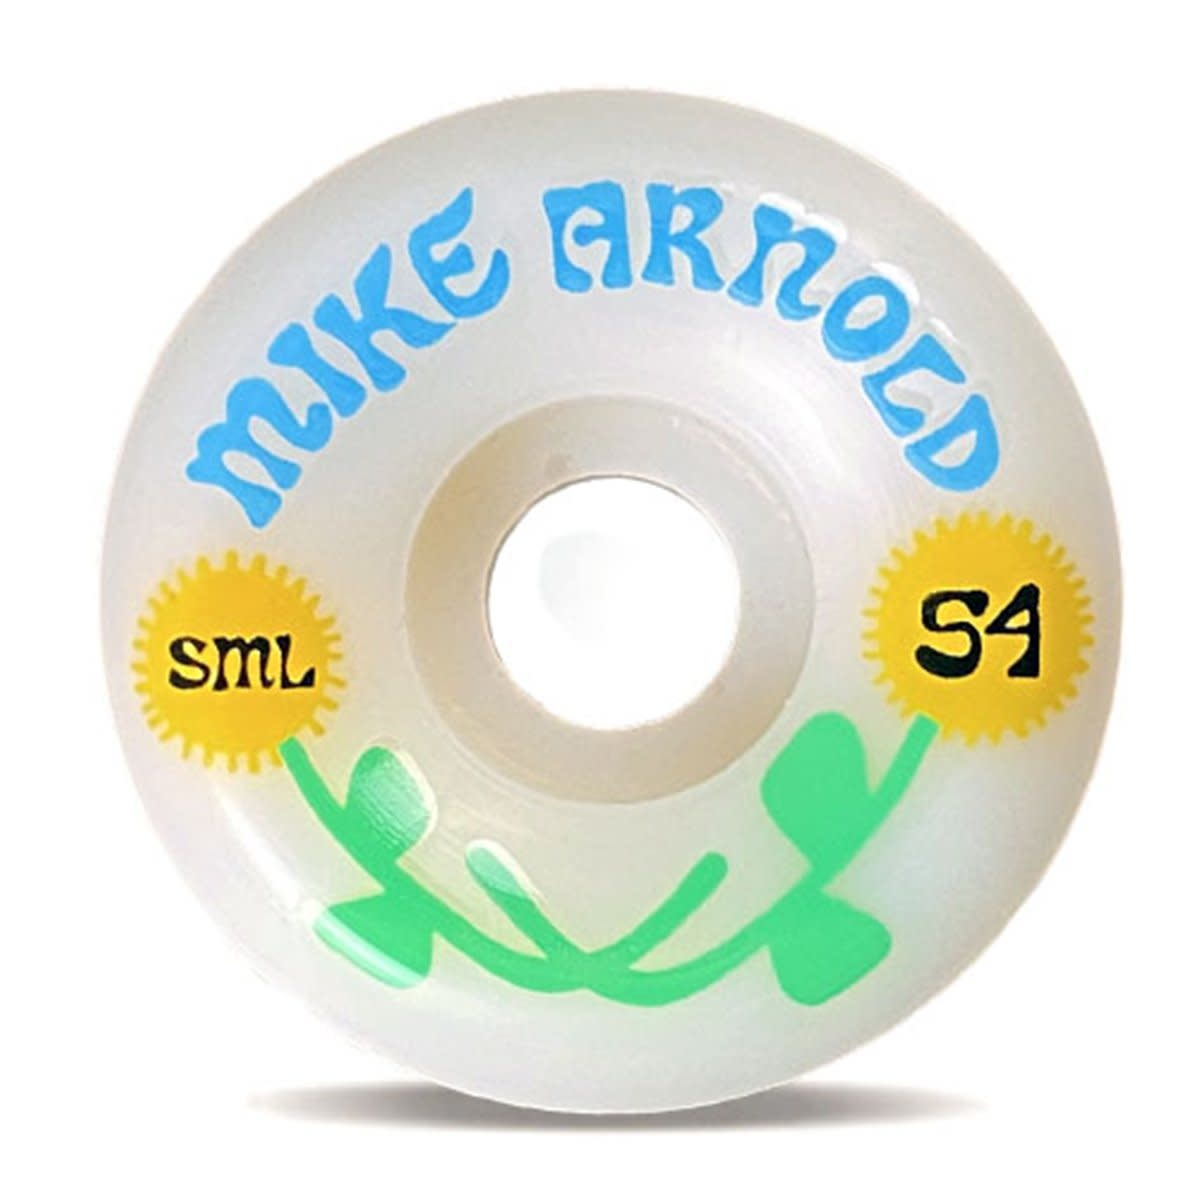 SML. Wheels The Love Series Arnold V-cut 99a 54